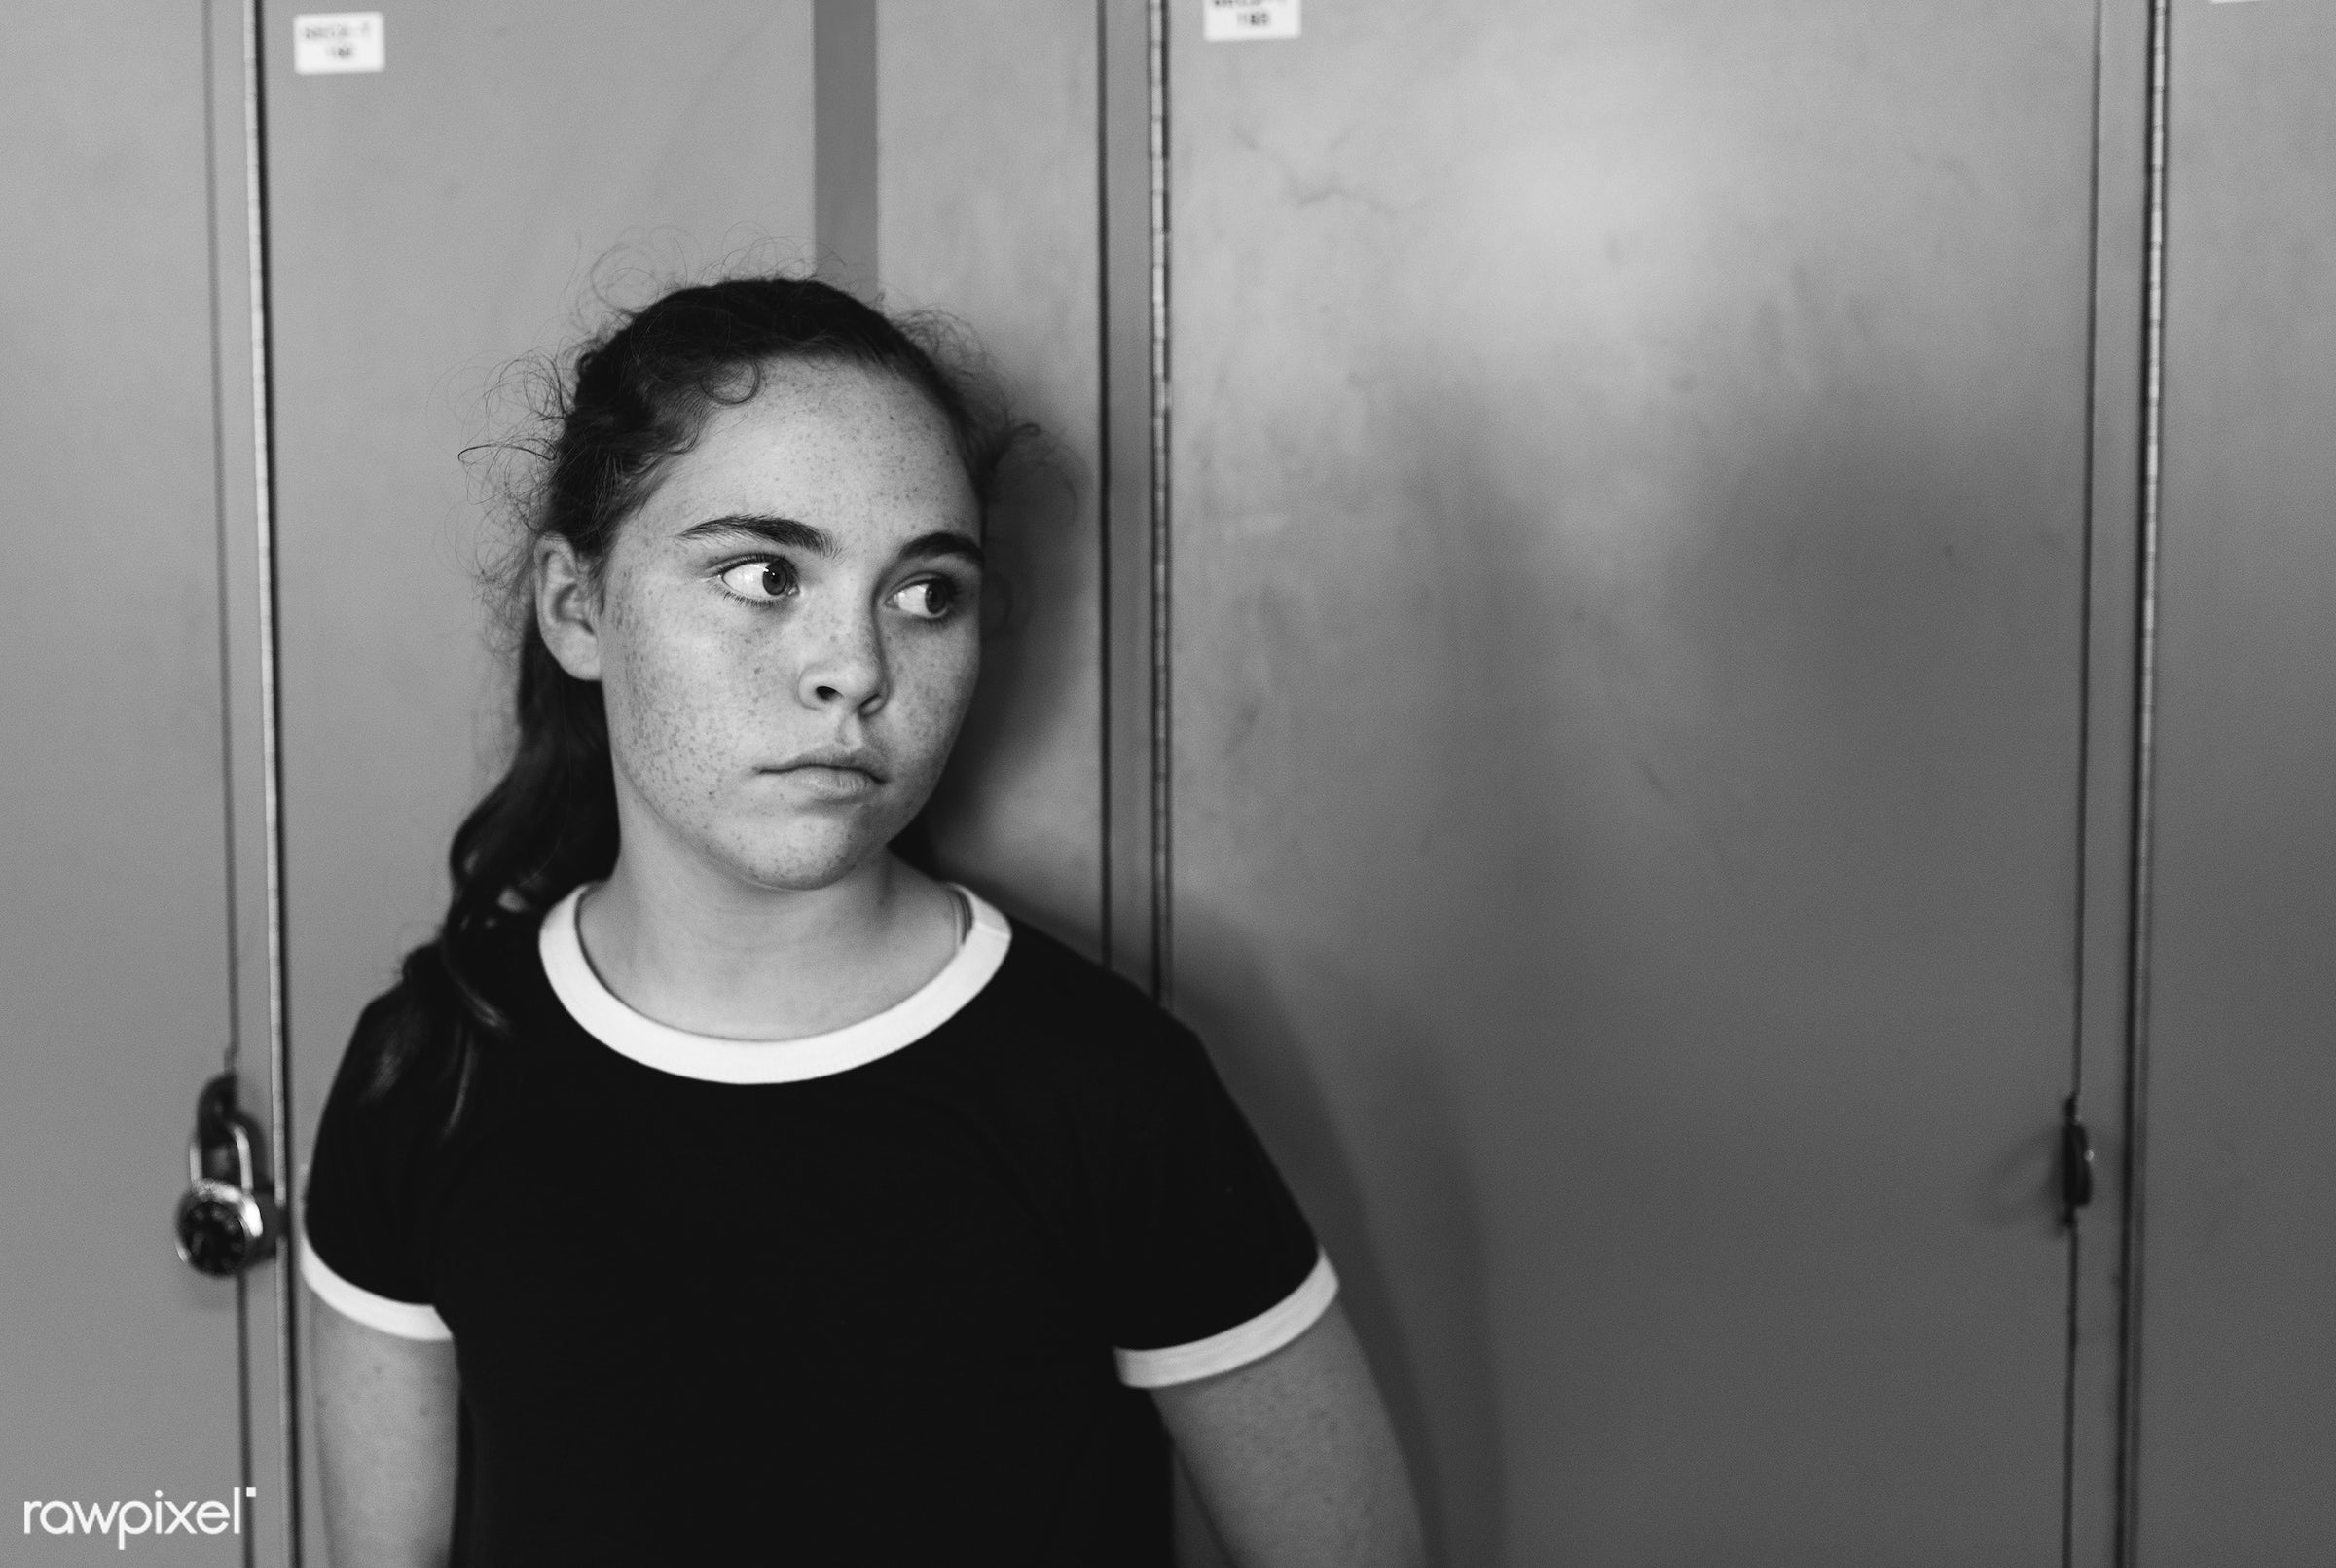 corridor, caucasian, blank expression, staring, girl, young adult, solo, teenager, casual, alone, high school, locker,...